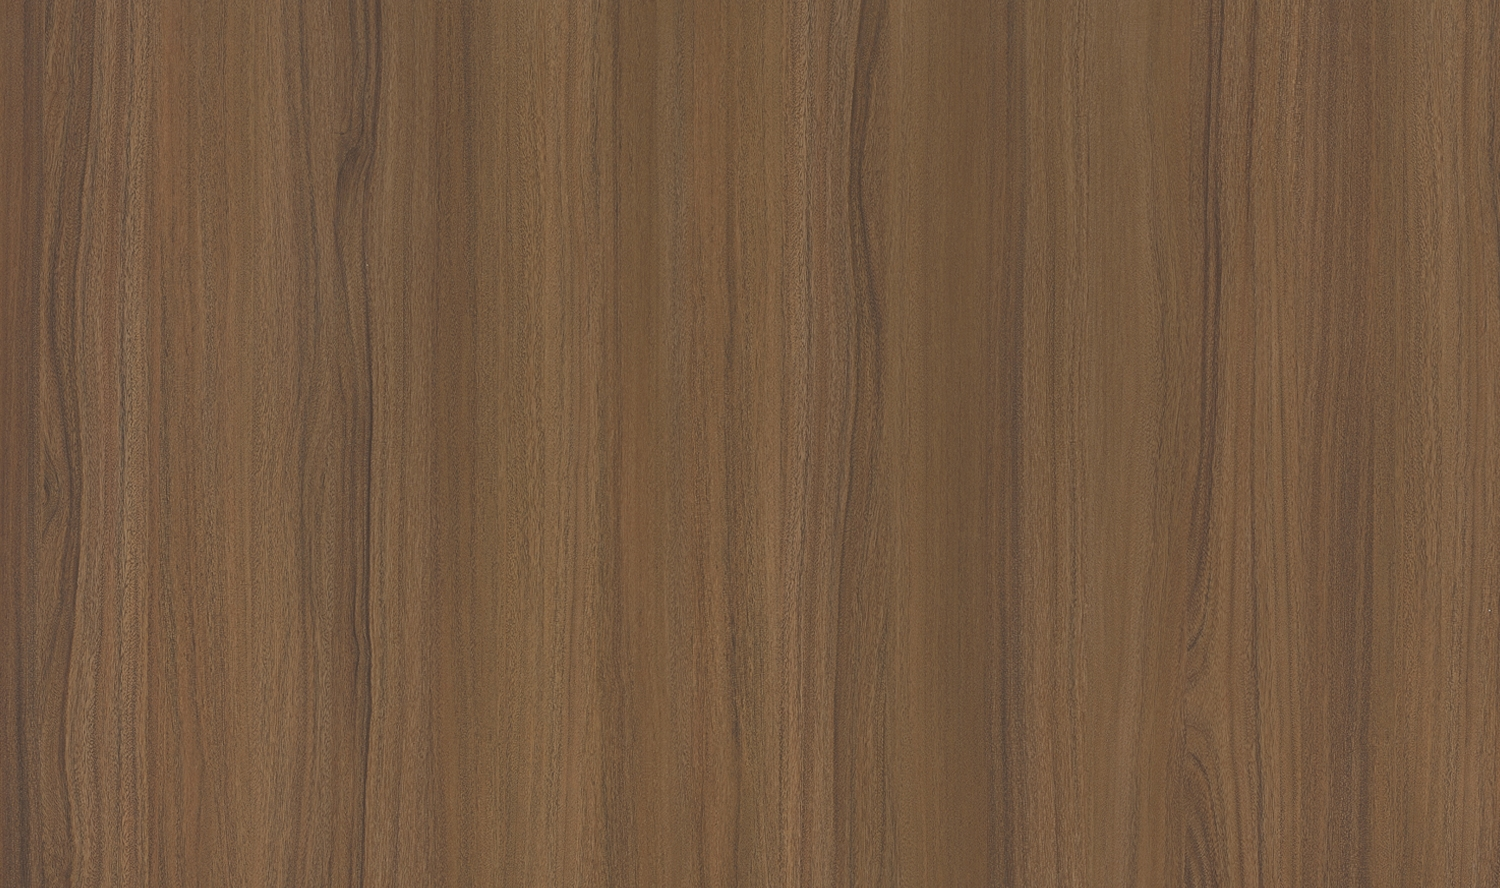 1MM international, South Supreme In Laminates For Living Room-Sundek International